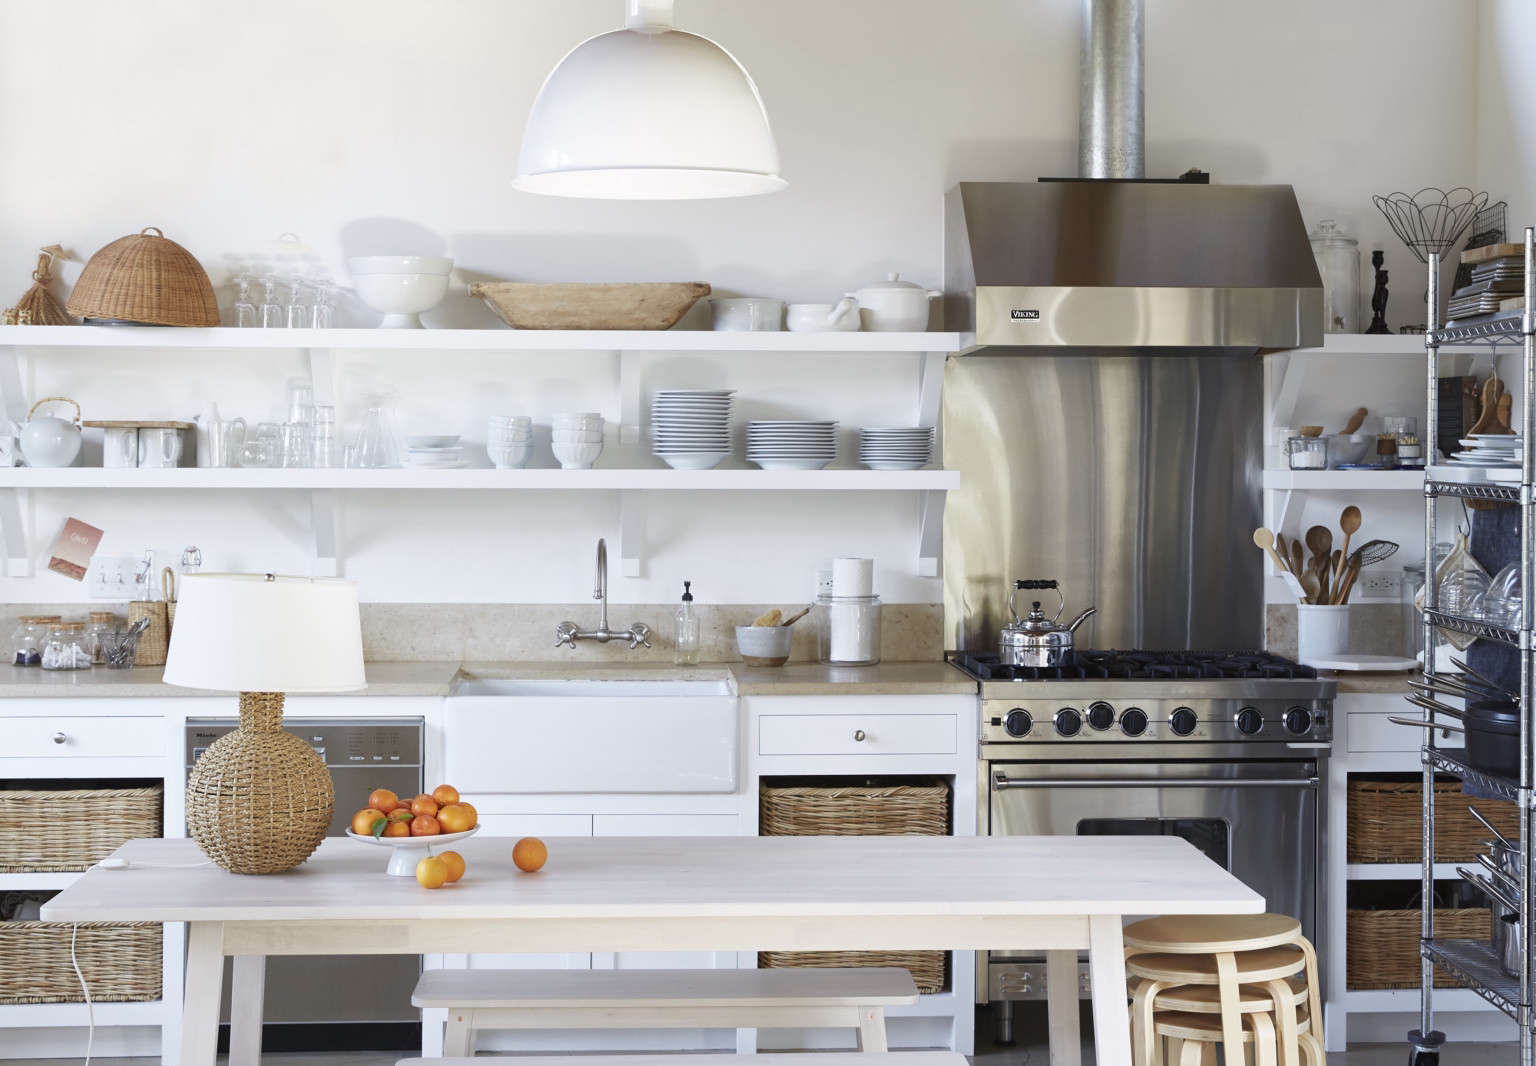 Kitchen of the Week: A Photographer's Flexible Studio Kitchen in Ojai Valley (And an Outdoor Shower, Too)